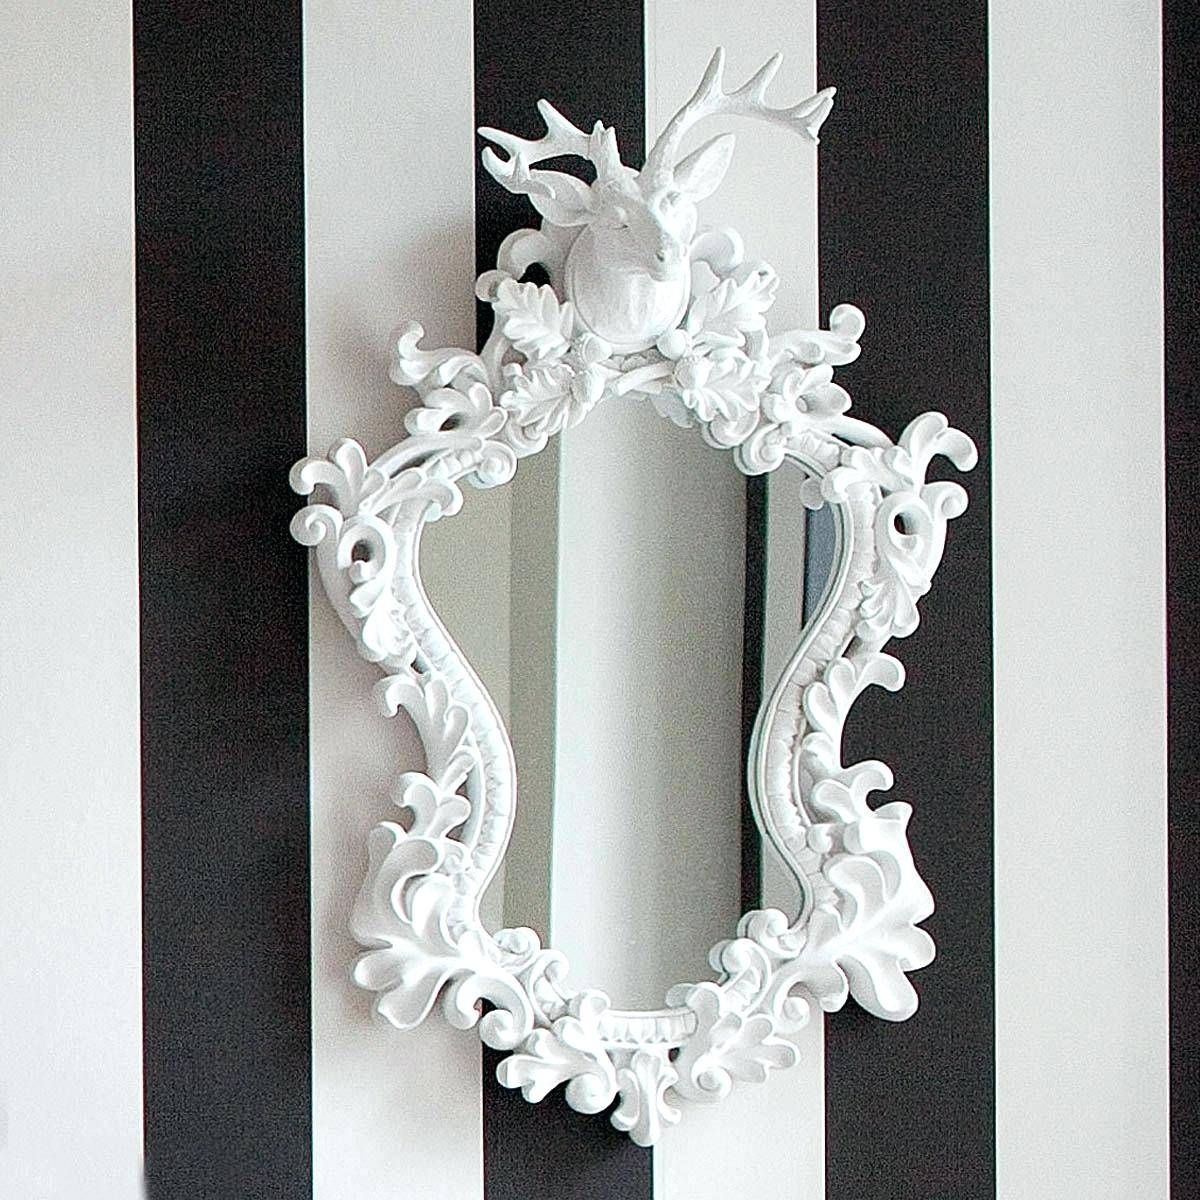 Beautiful Antique Design Silver Wall Mirrorlarge Modern Heart regarding Heart Venetian Mirrors (Image 10 of 25)